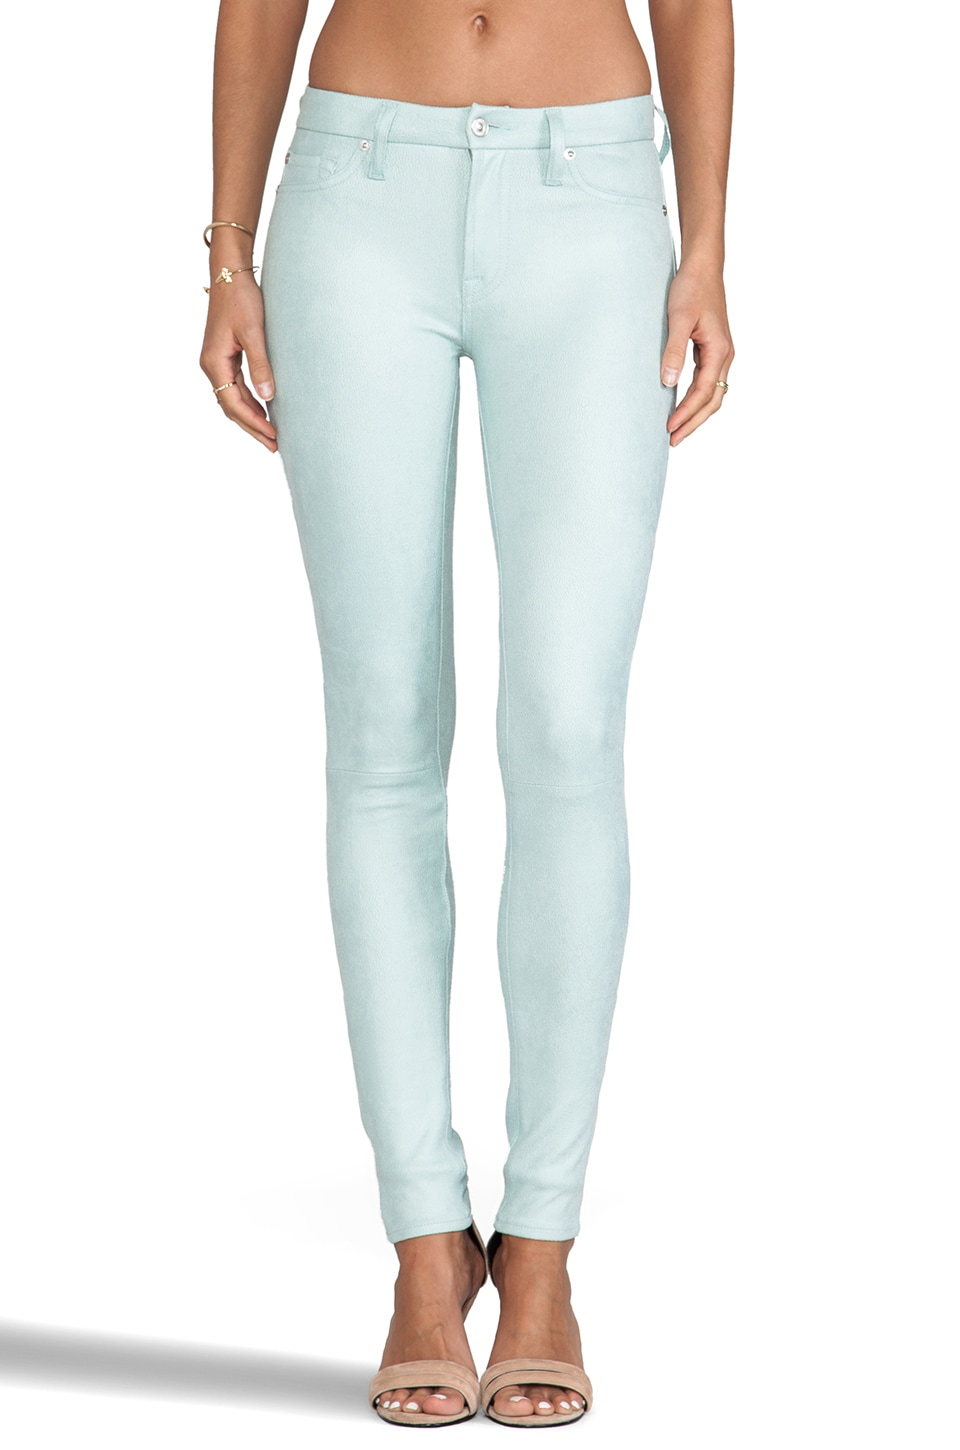 7 For All Mankind Knee Seam Skinny in Mint Crackle